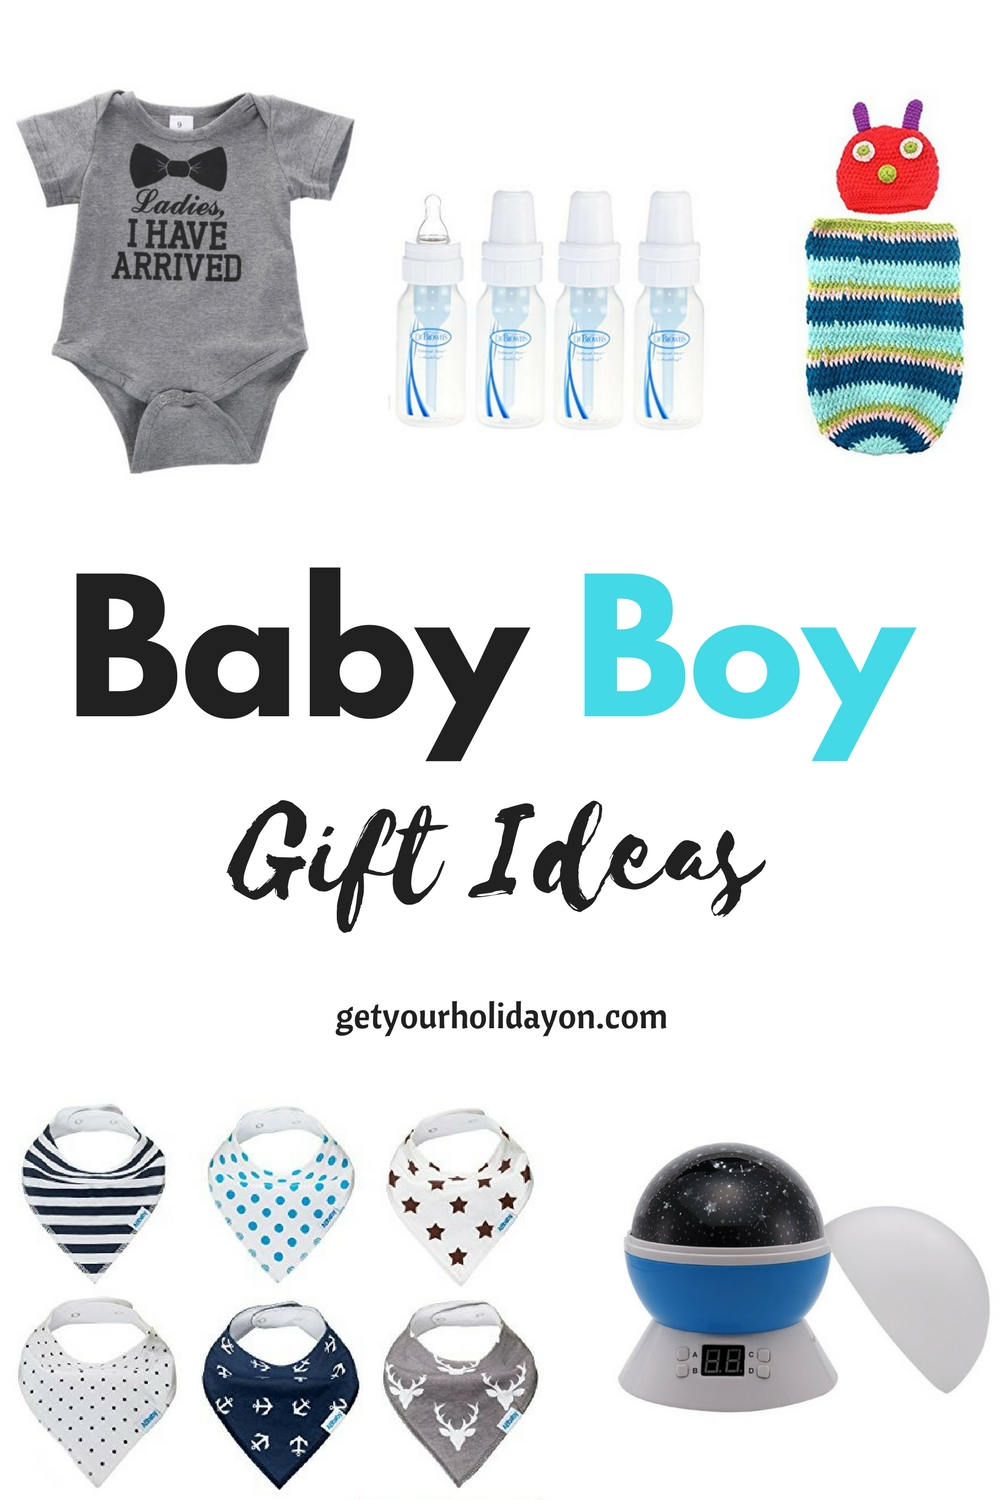 Newborn Baby Gift Ideas Boy : Baby boy gift ideas get your holiday on